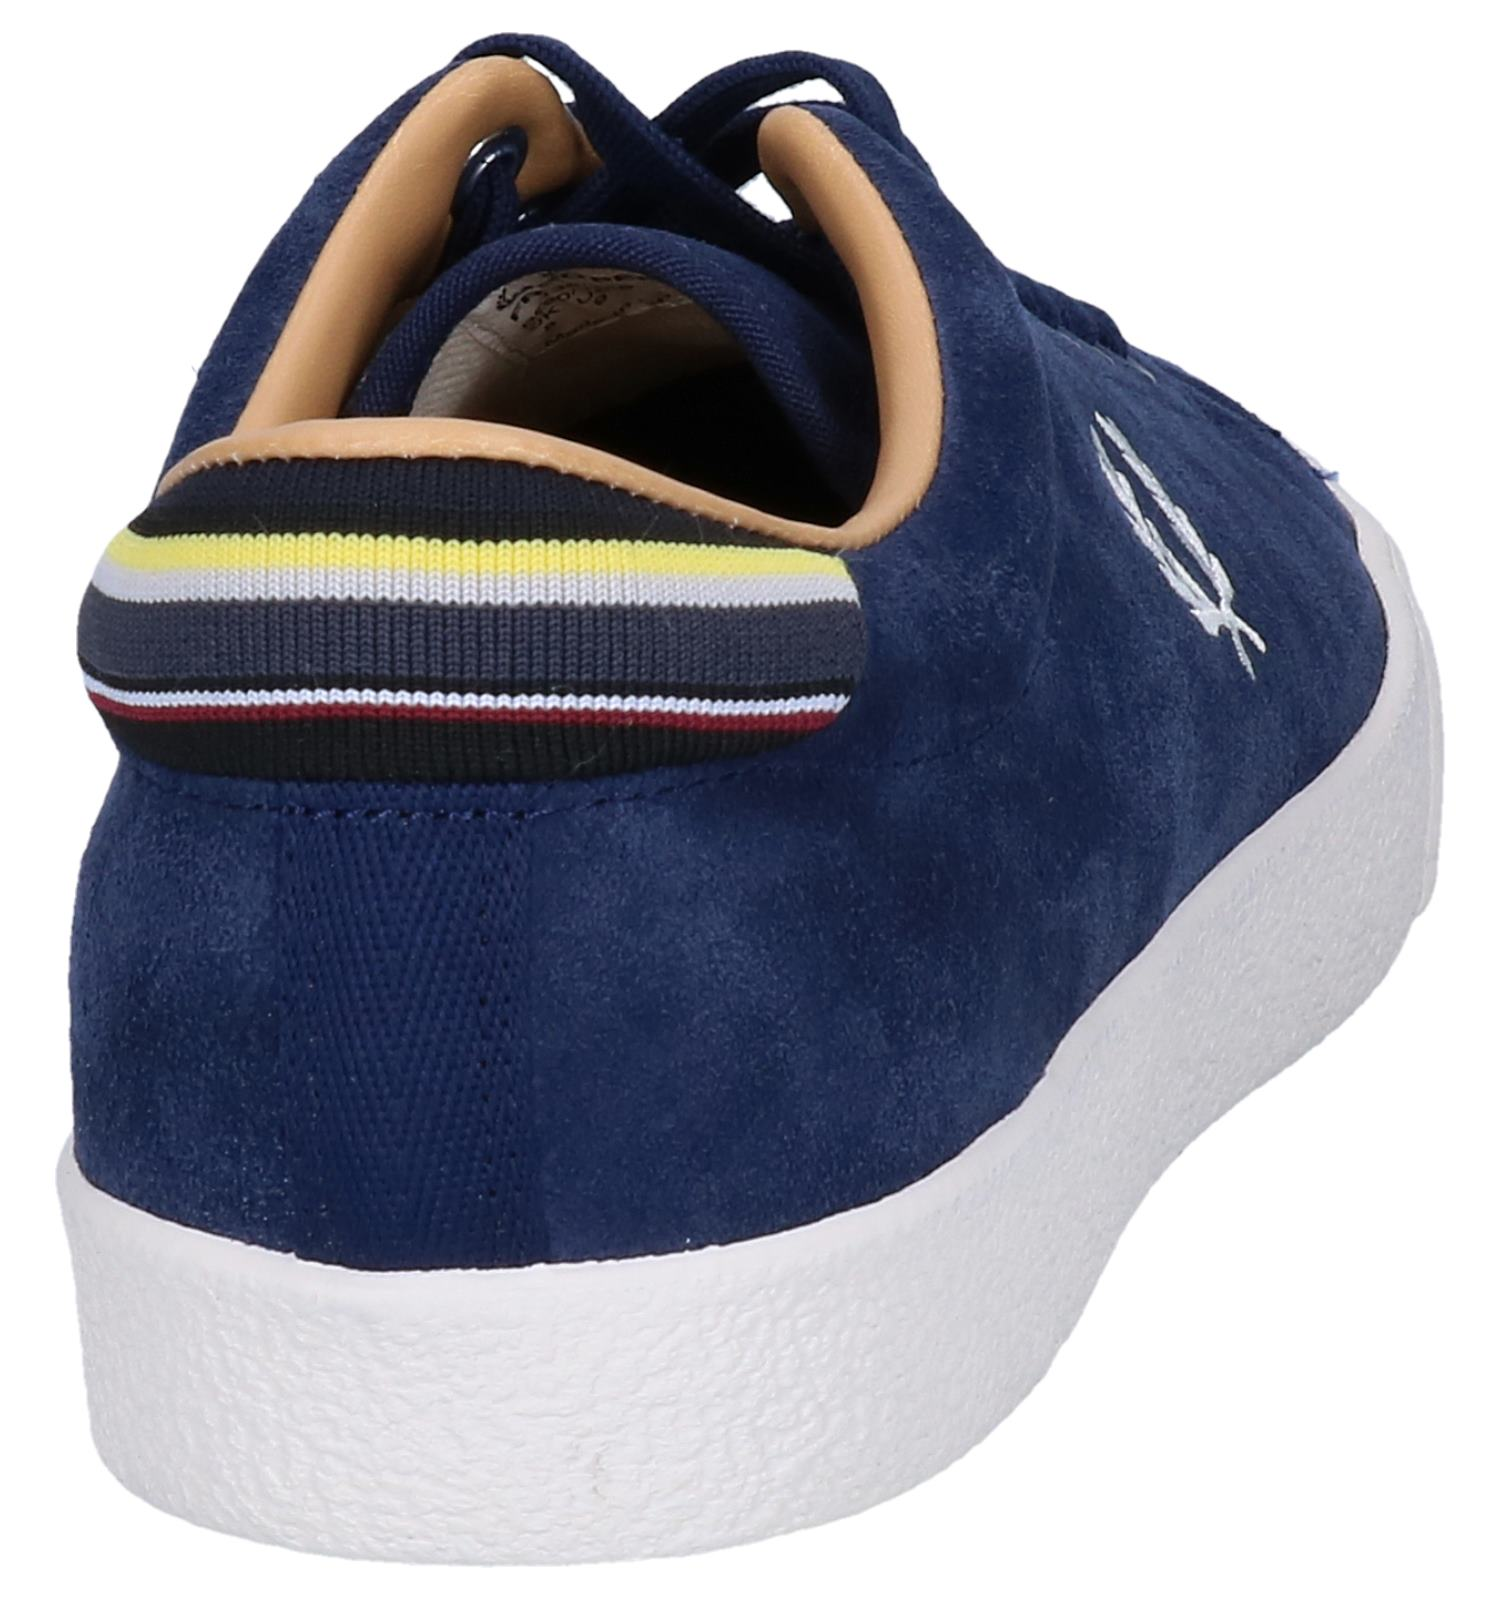 Fred Sneakers Fred Perry Donkerblauwe Donkerblauwe Sneakers Fred Perry Sneakers Perry Donkerblauwe Donkerblauwe rdtsQhxC